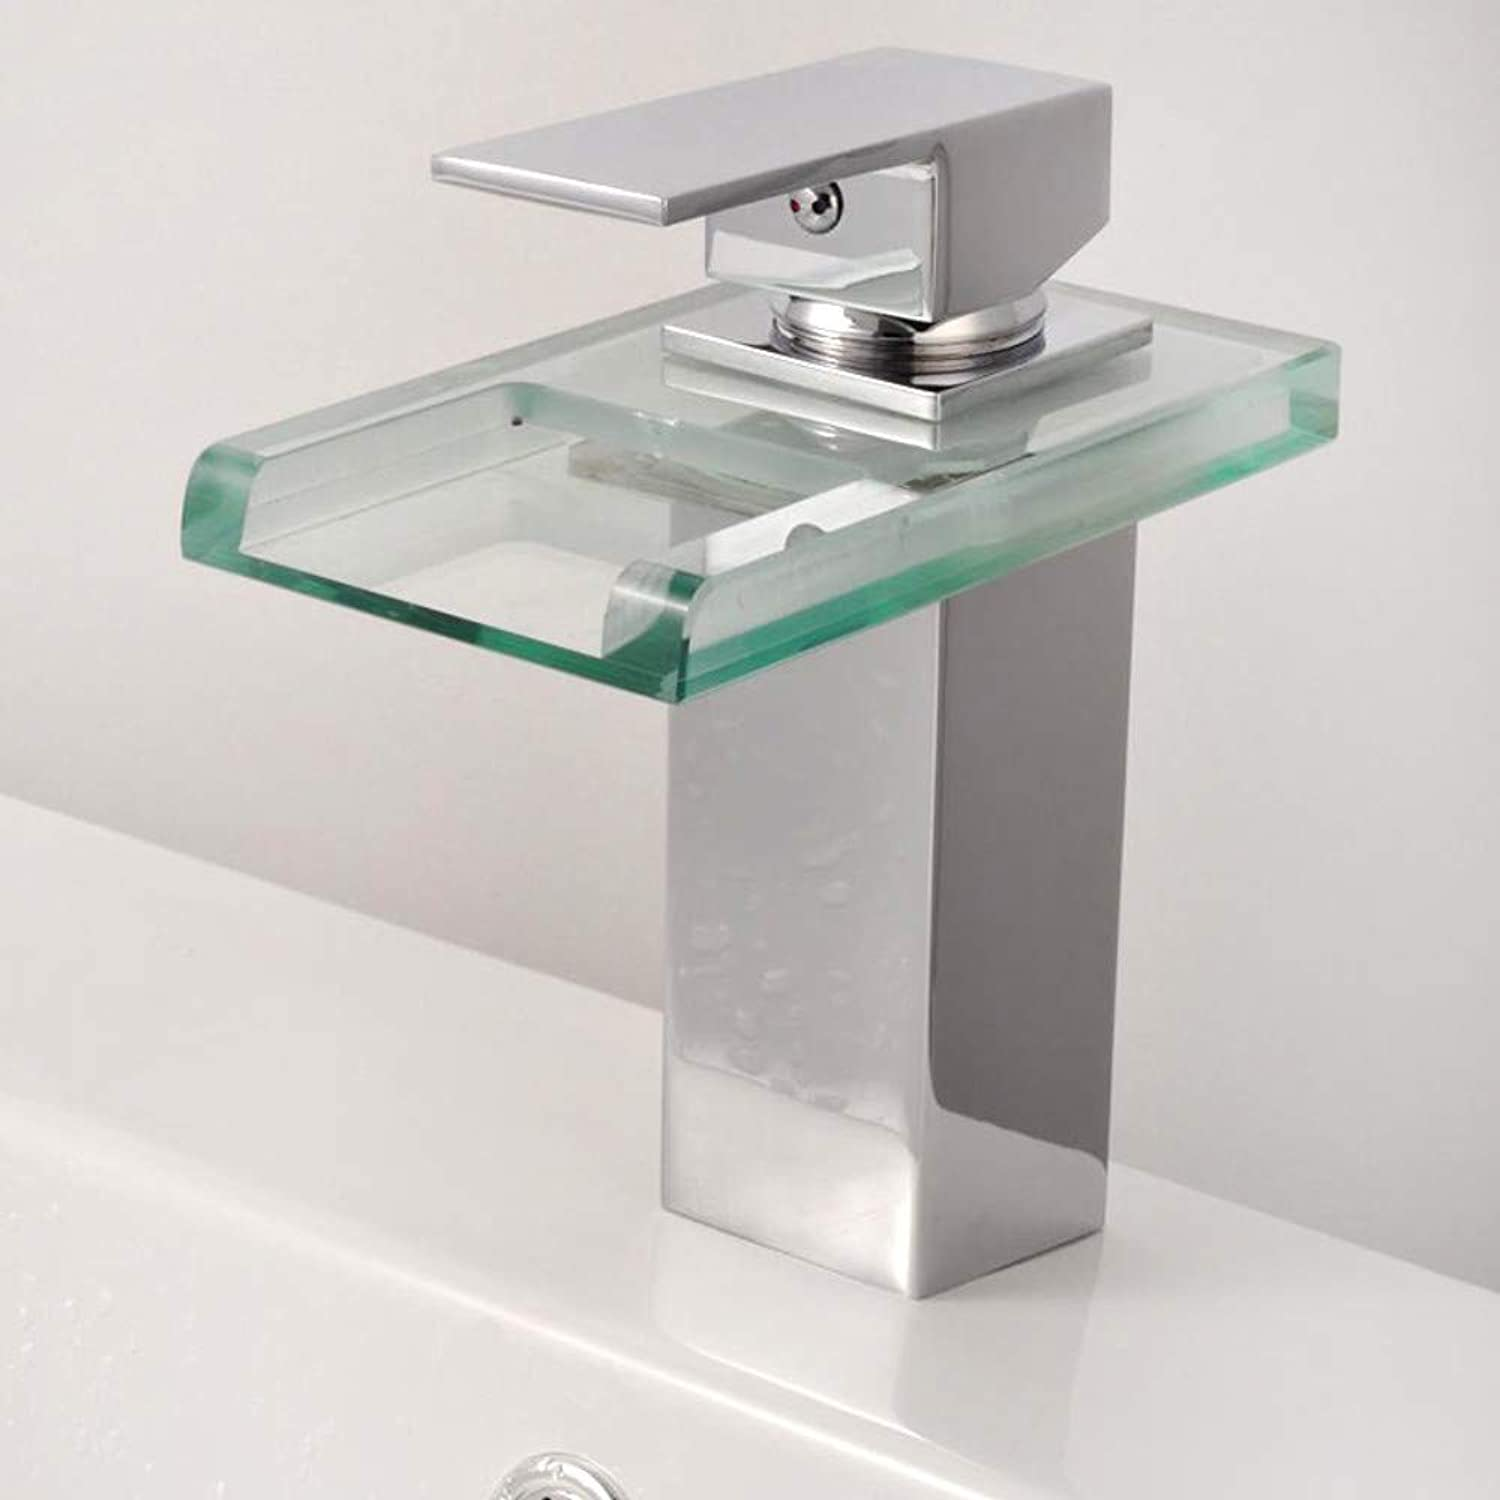 Kitchen Sink Taps Bathroom Sink Taps ?Basin Faucet Temperature Control color Glass With Light Glass Sink Waterfall Faucet